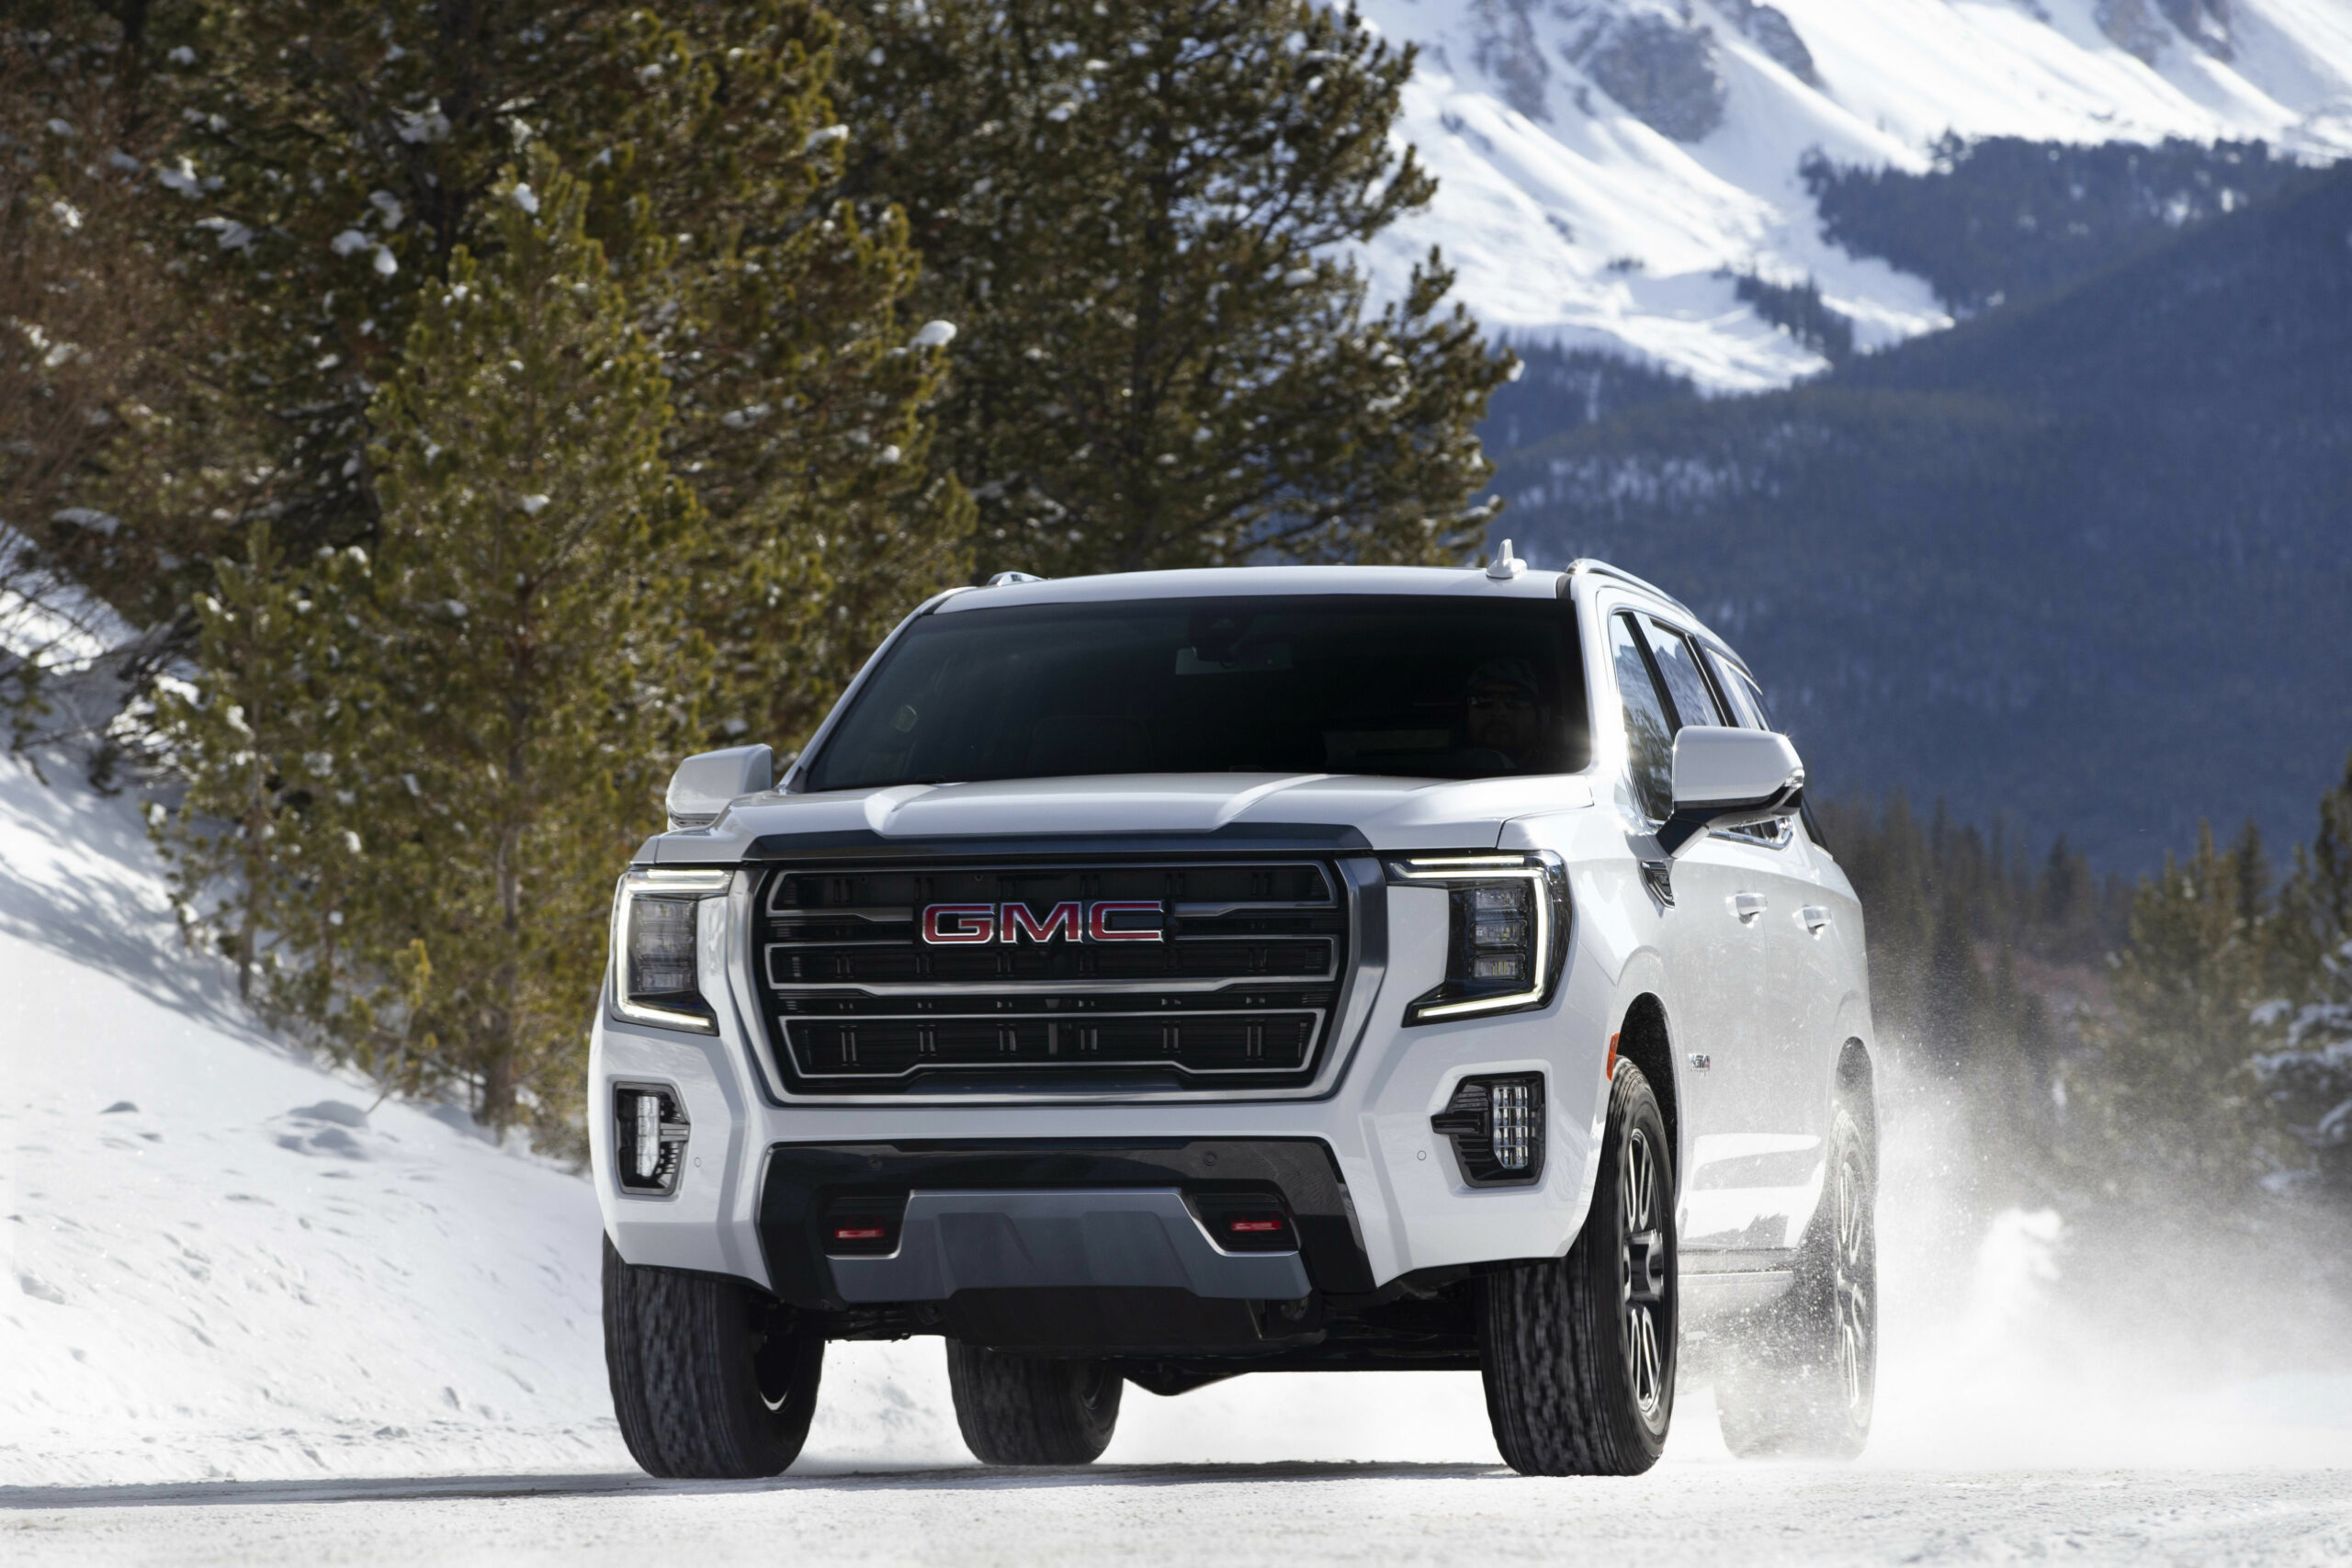 General Motors unveils new 6 GMC Yukon, Yukon XL SUVs - cadillac denali 2020